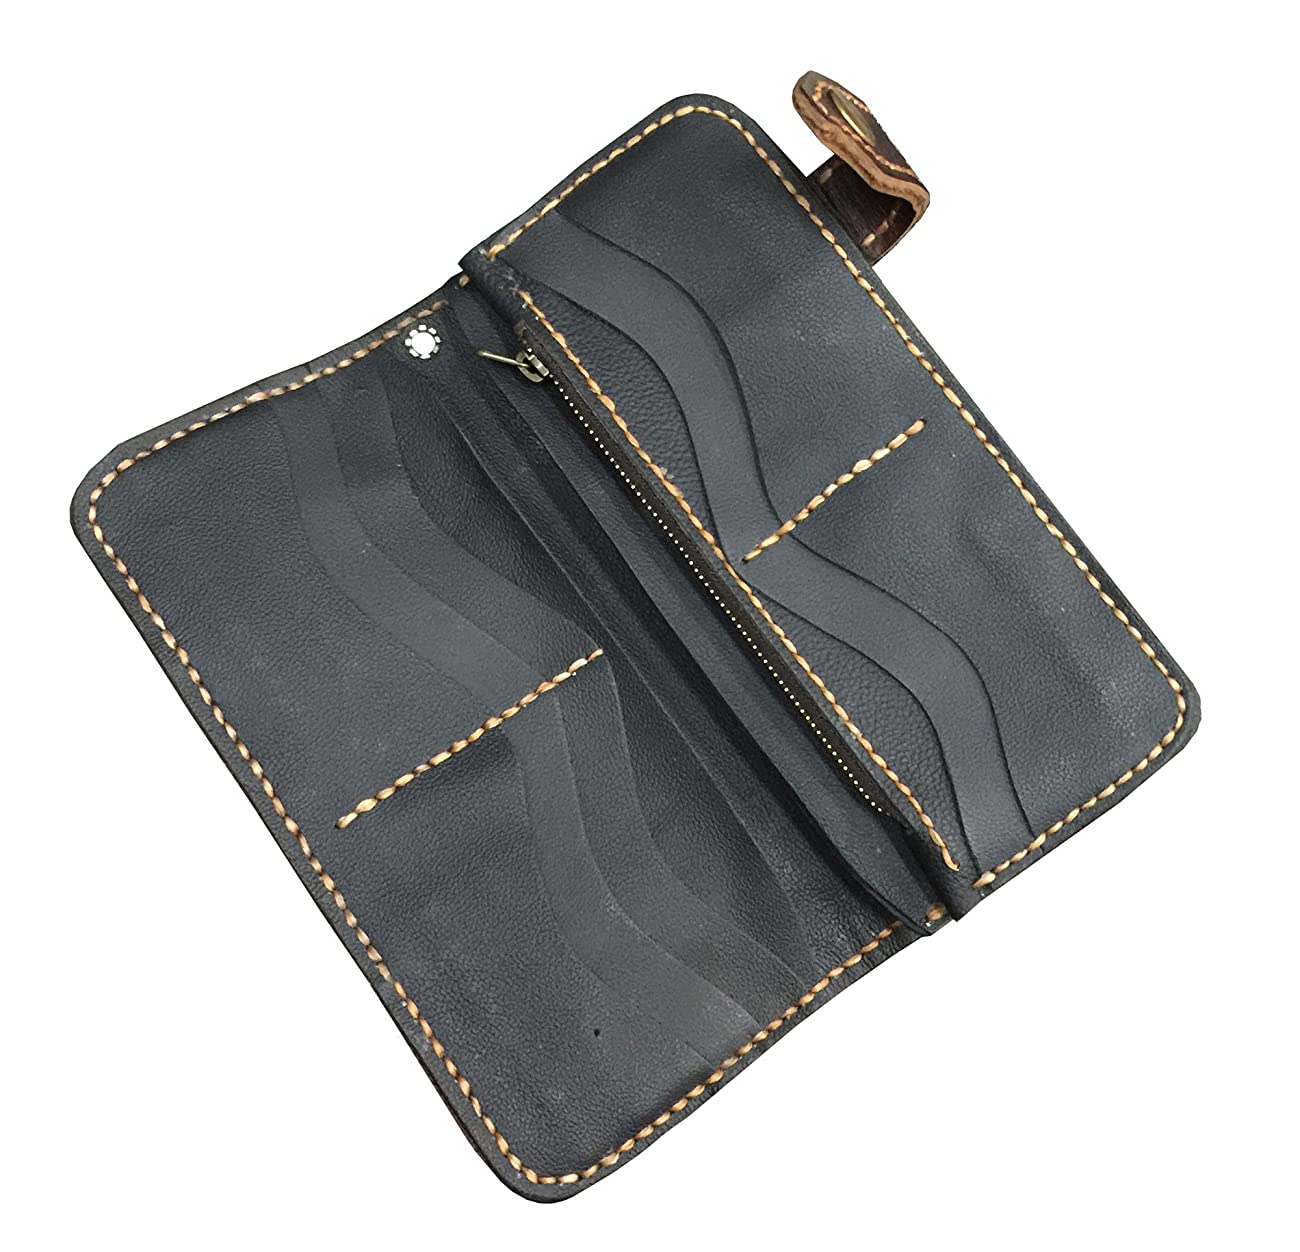 D'SHARK Men's Vintage Biker Genuine Leather Billfold Wallet 2